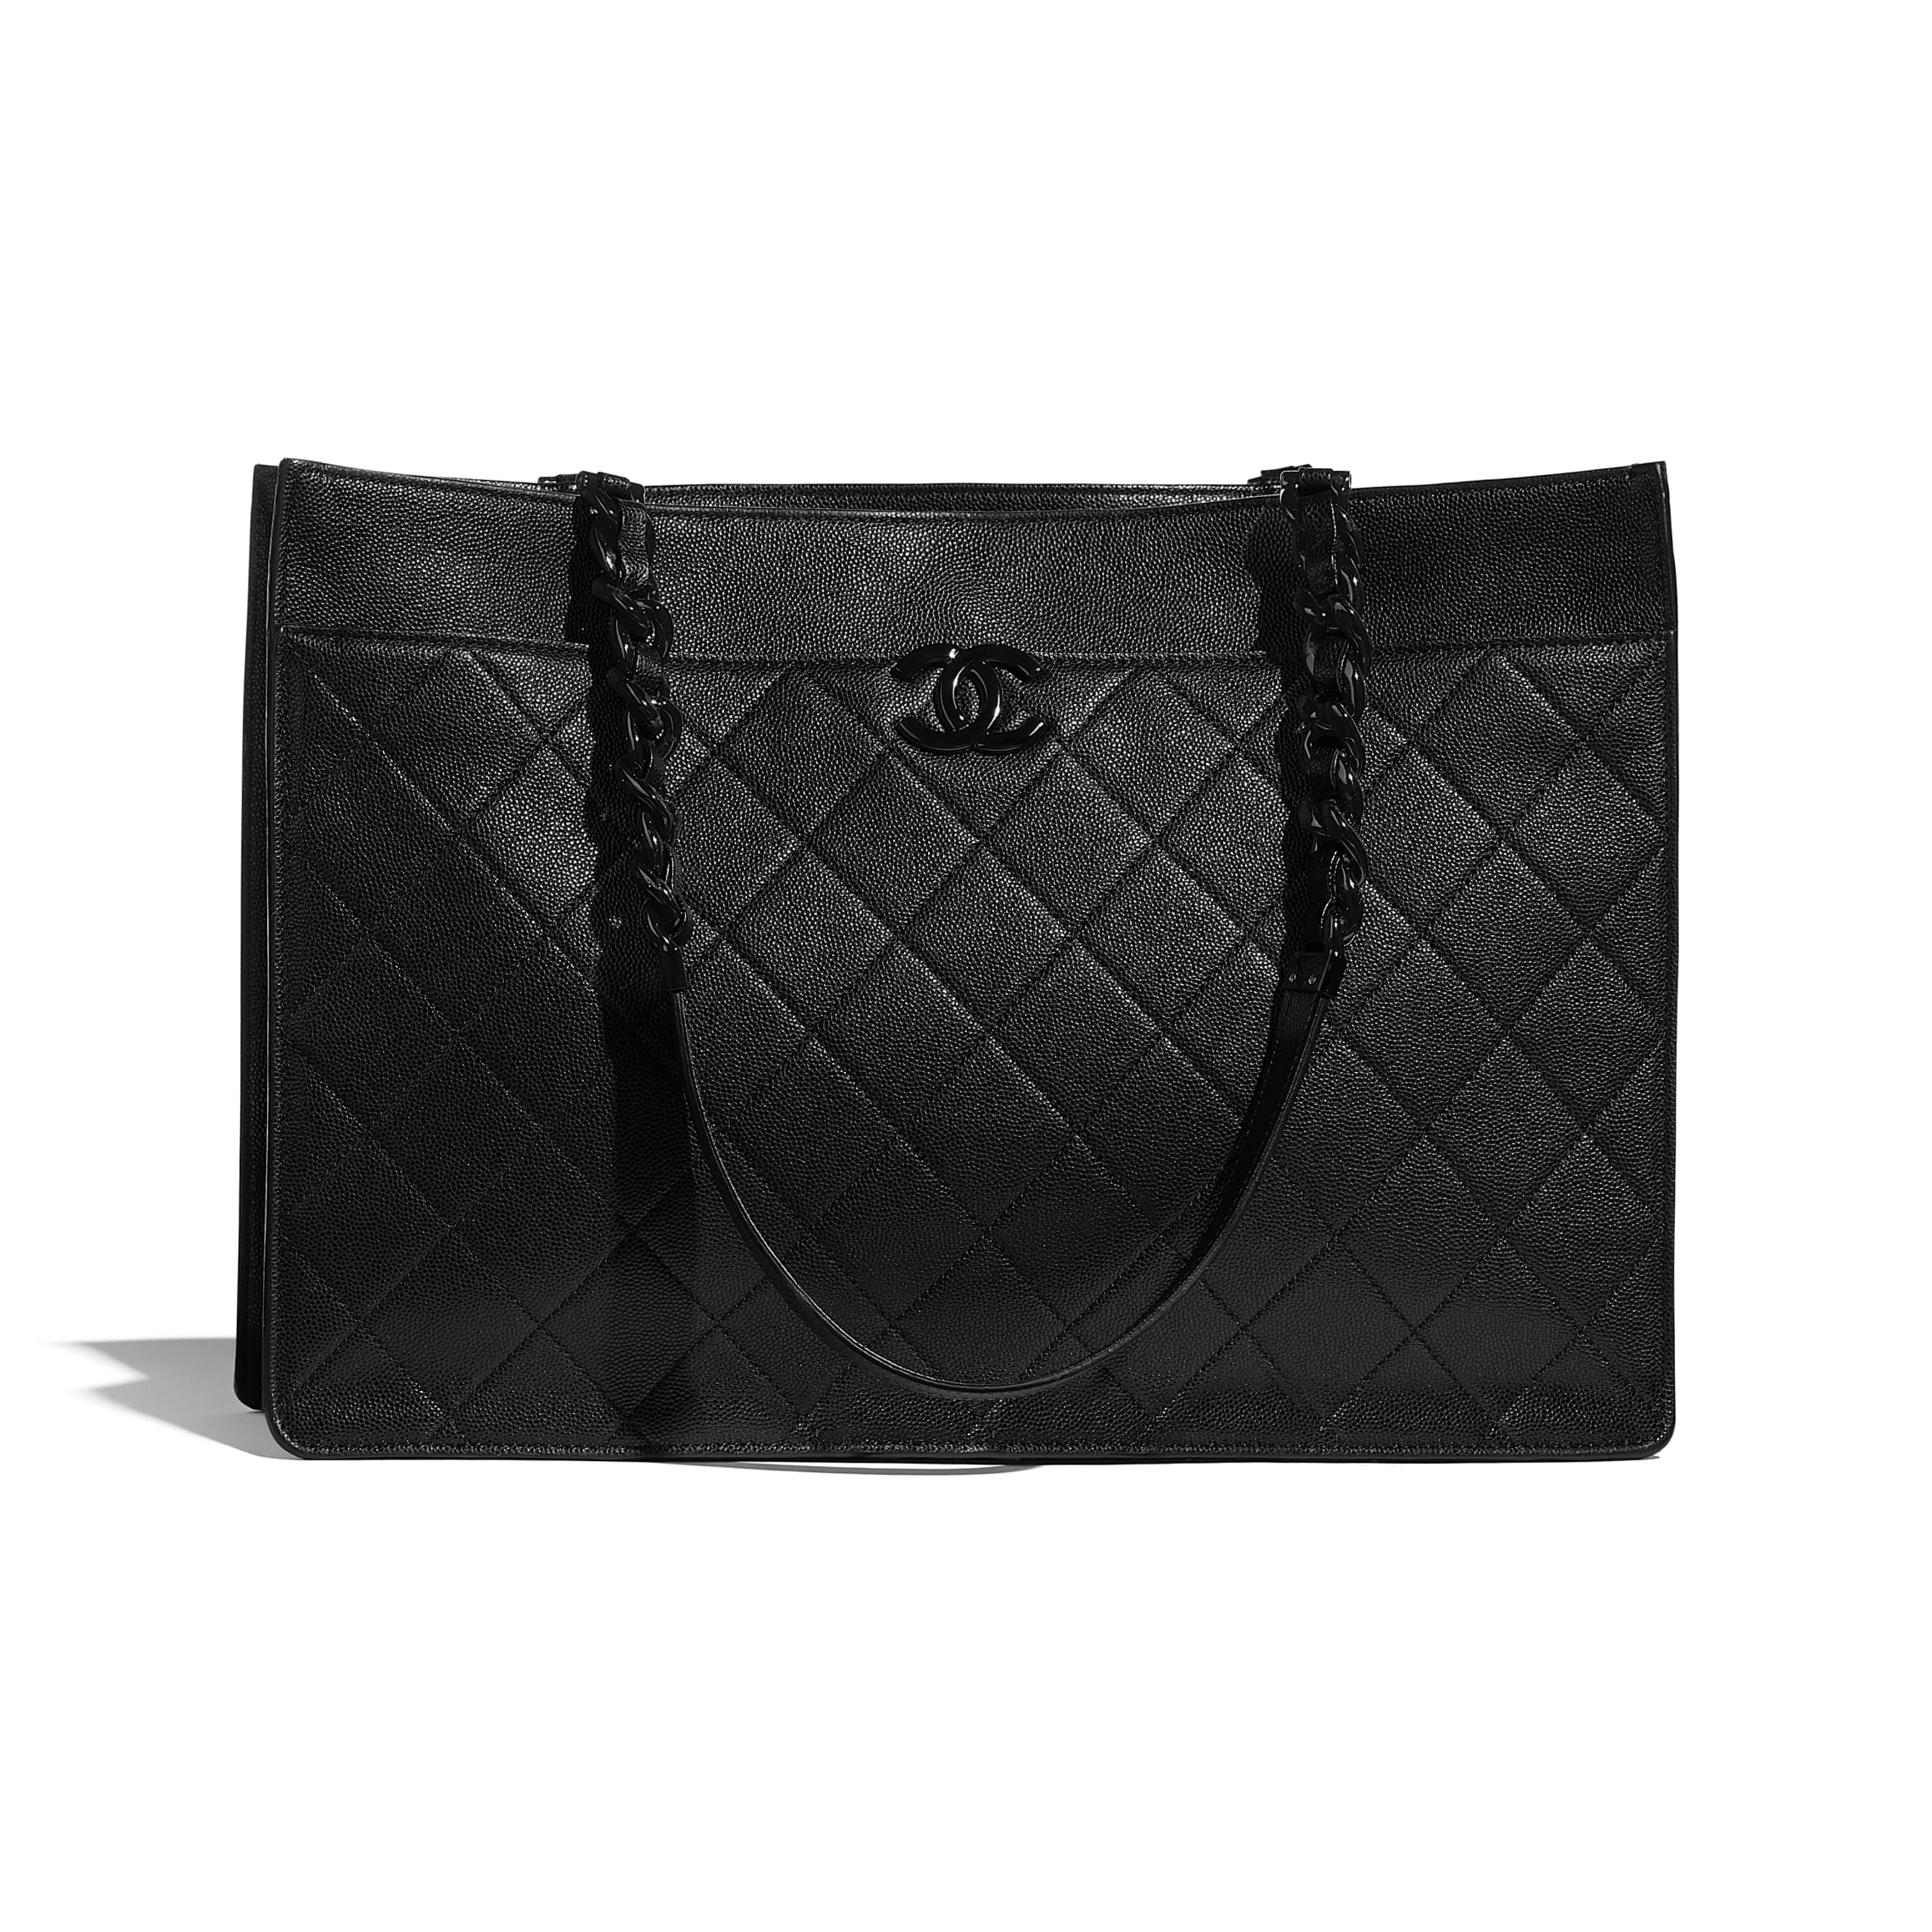 Large Tote - Black - Grained Calfskin & Lacquered Metal - CHANEL - Default view - see standard sized version